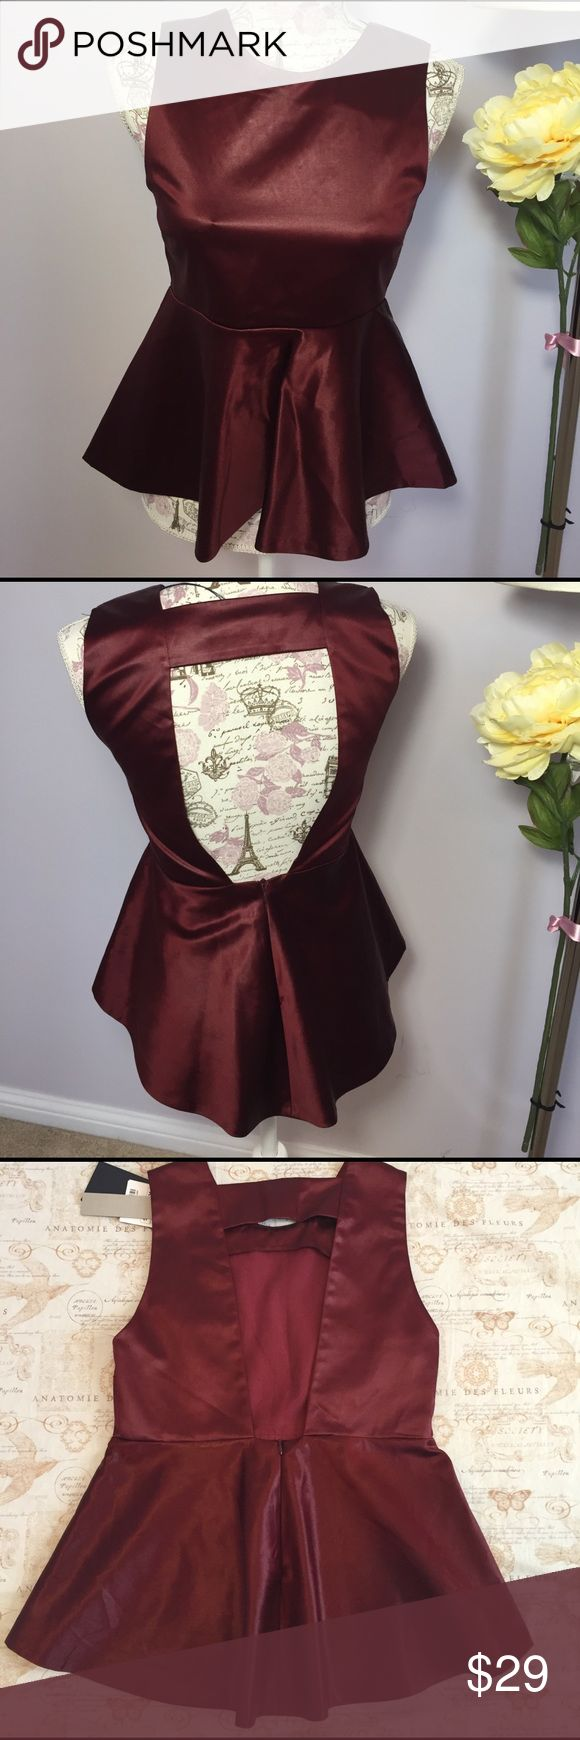 """Zara Studio Peplum Top NWT! Beautiful great quality Zara satin Peplum Top. Burgundy. 52% Cotton, 45% Acetate & 3% Elastane. Exposed High-Low back. Concealed zip for back closure. 15"""" pit to pit. 21"""" shoulder to hem. New with tags. Zara Tops"""